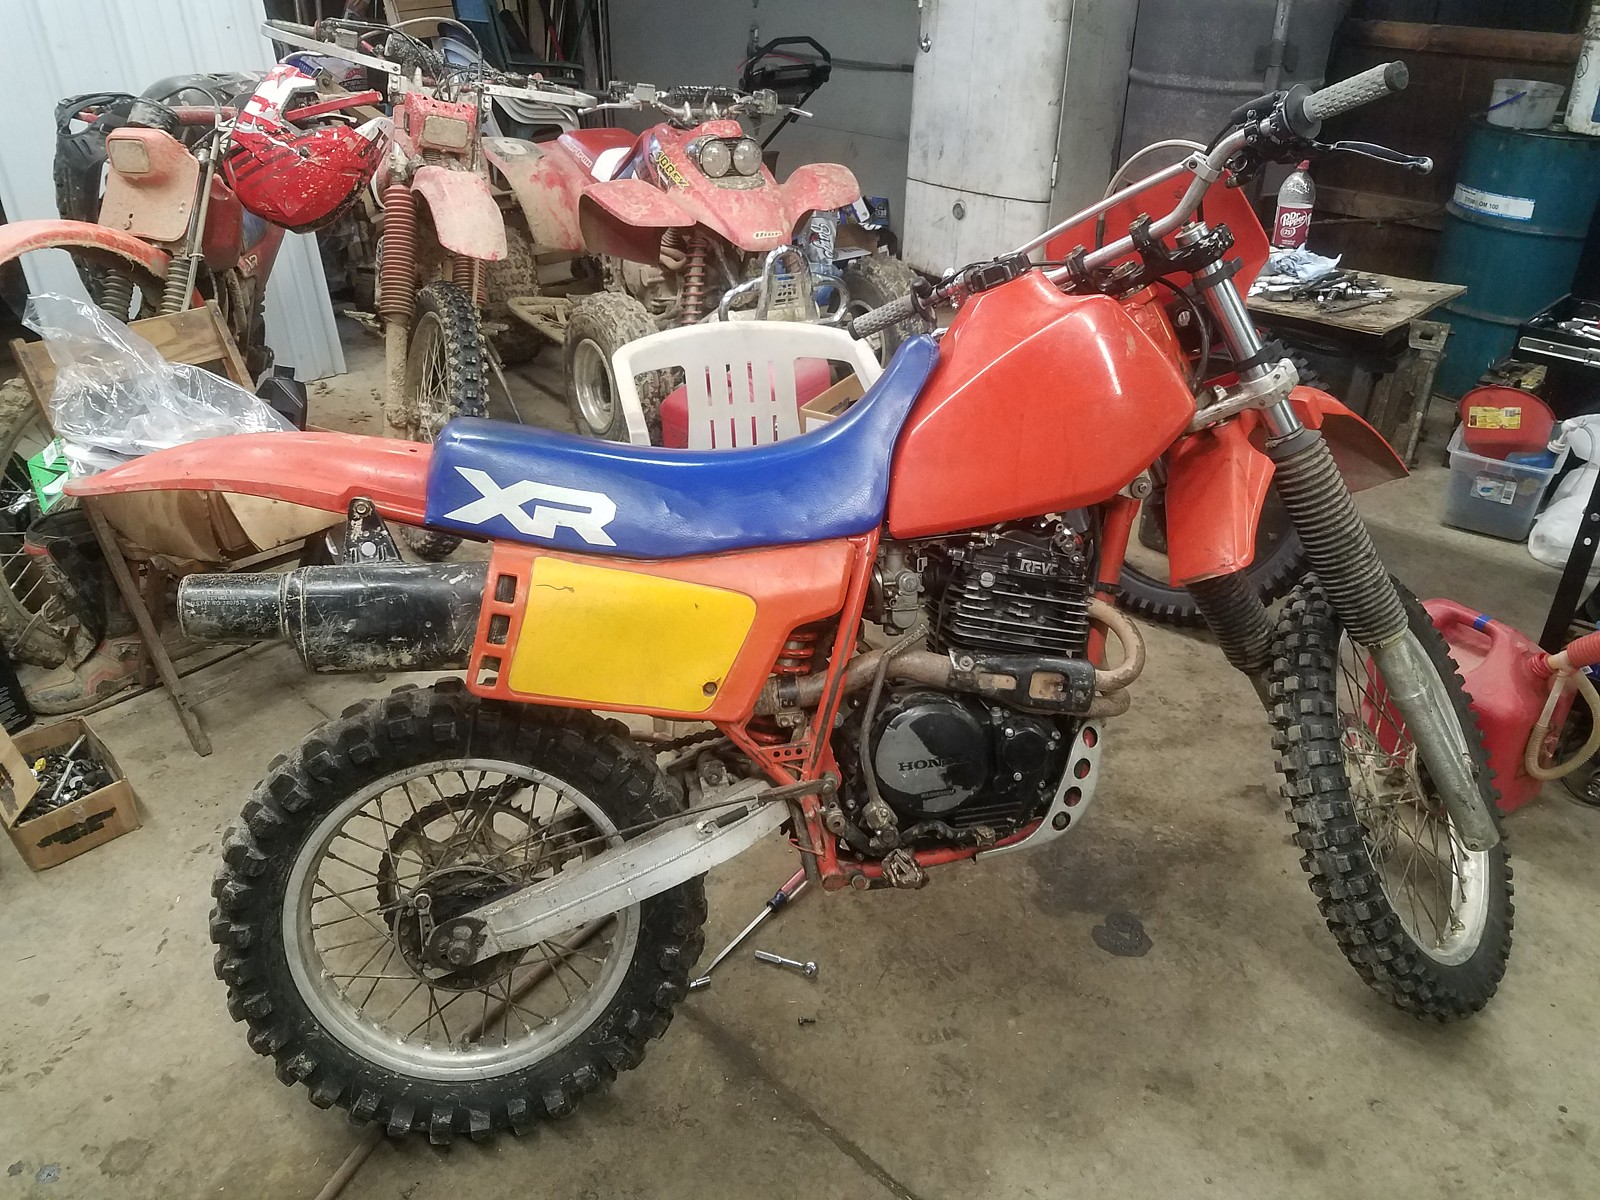 1984 xr500 - mpeters - Motocross Pictures - Vital MX